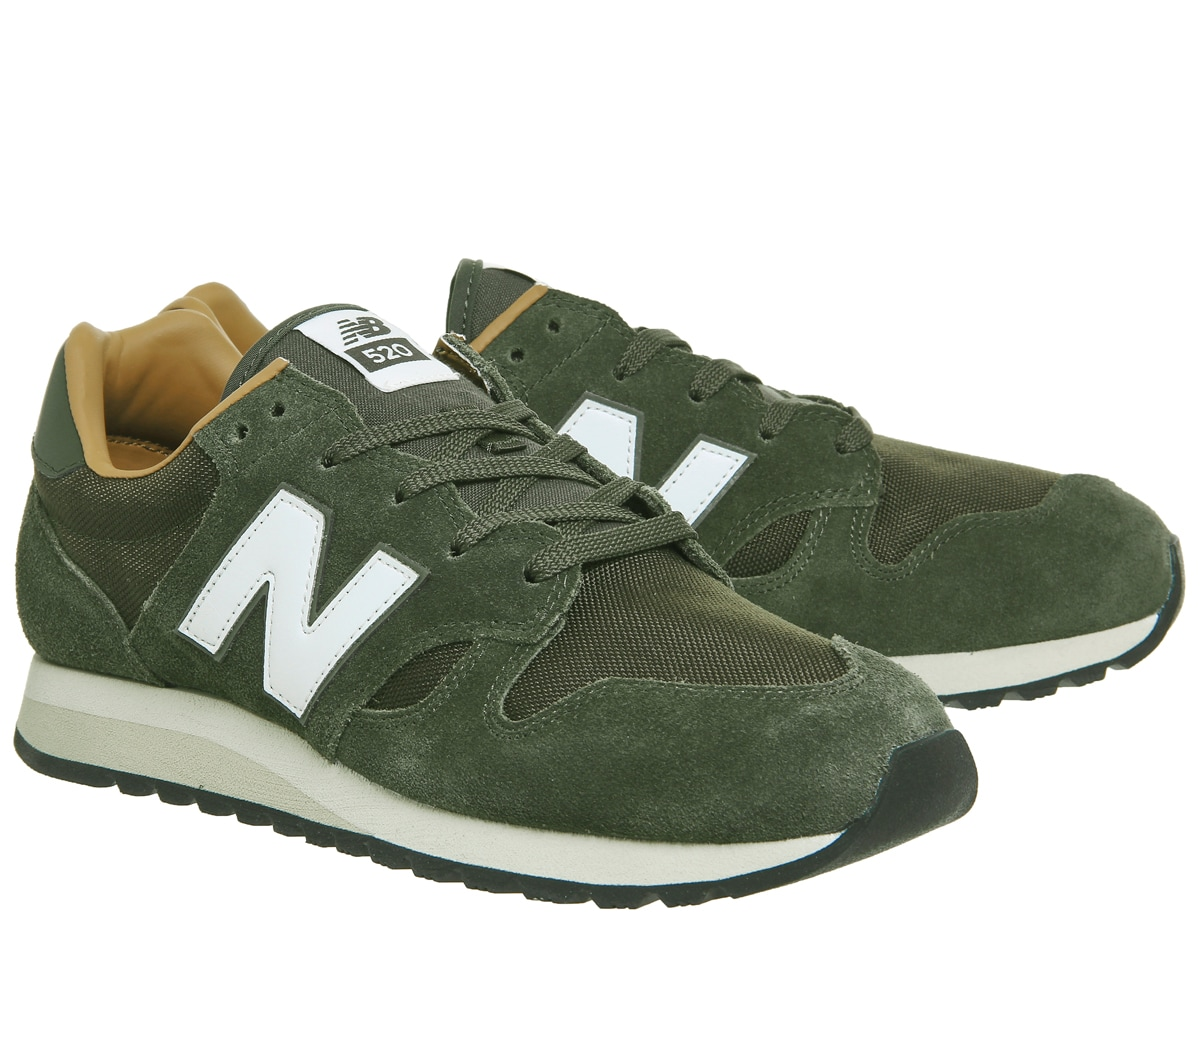 New-Balance-U520-Trainers-OLIVE-Trainers-Shoes